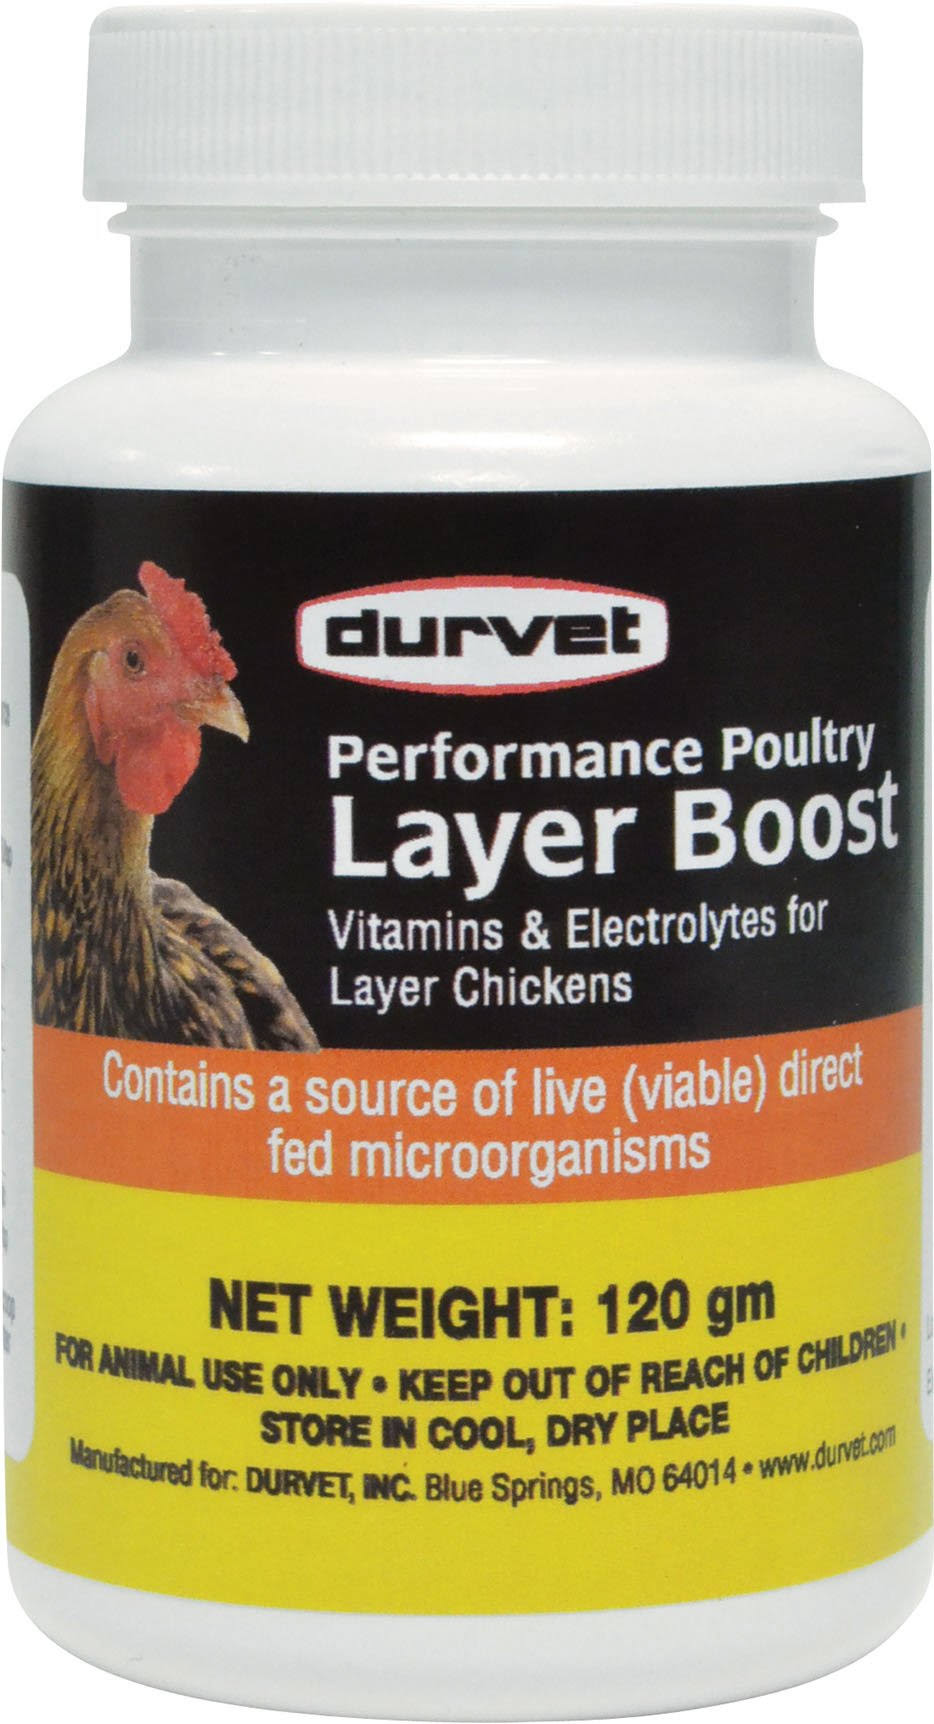 Durvet Layer Boost Vitamins & Electrolytes - 120g